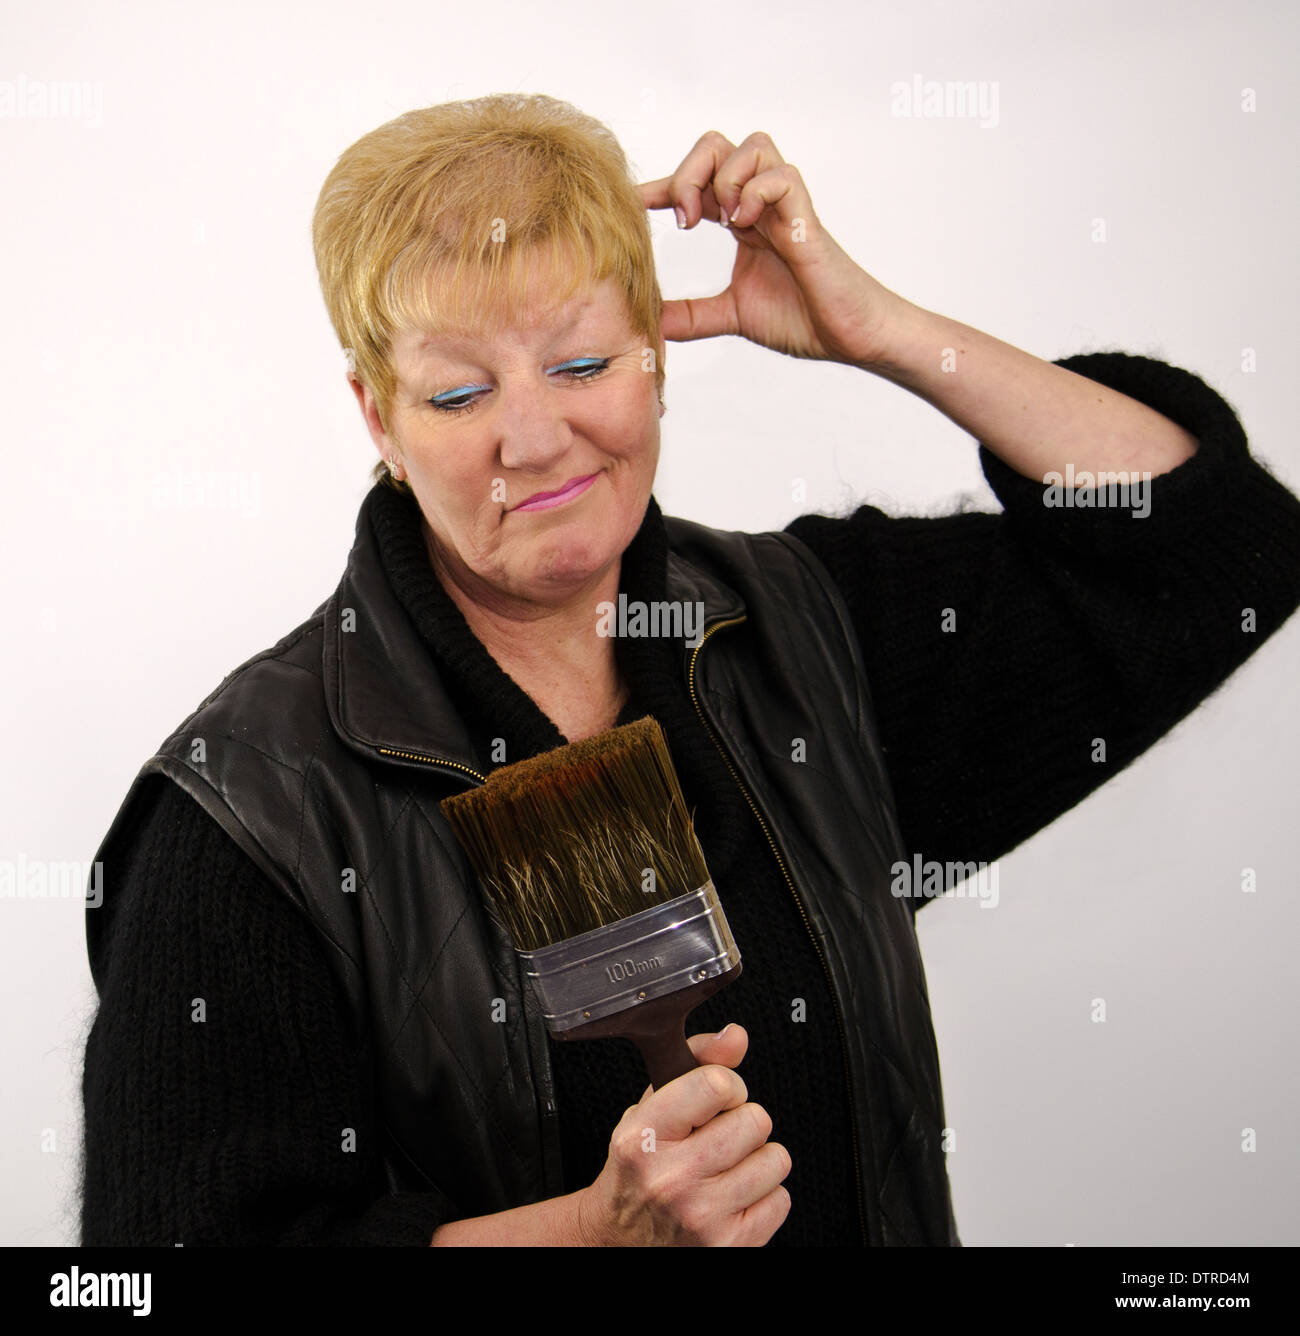 Blonde haired woman looking puzzled with paint brush - Stock Image